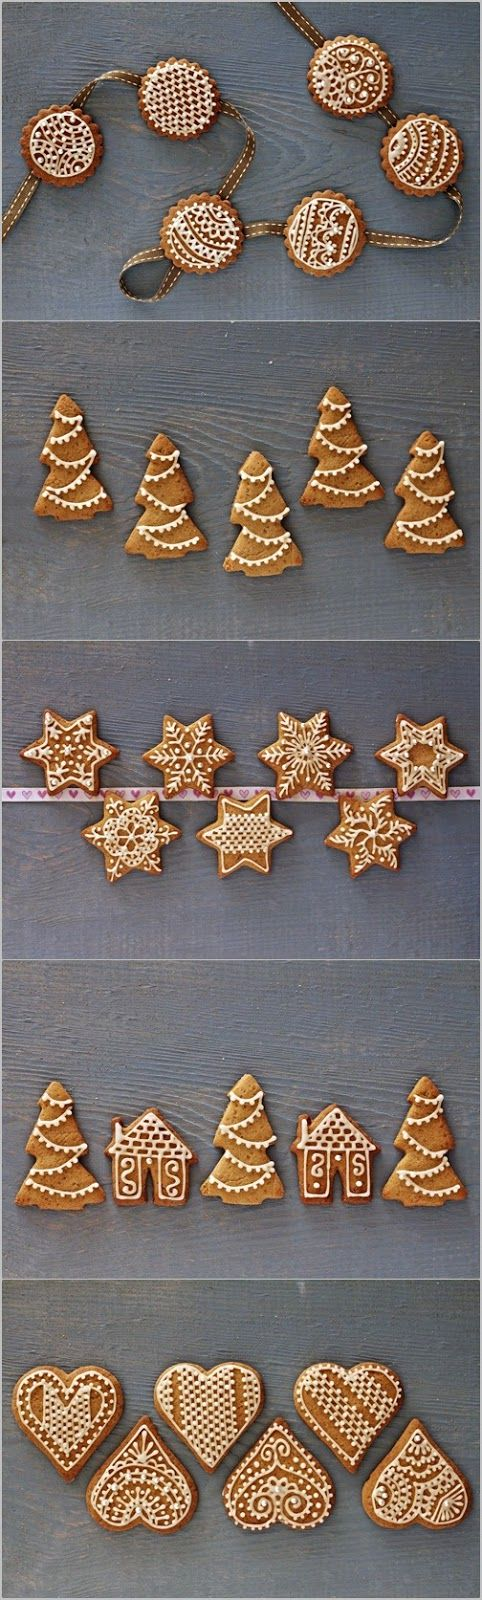 My Diverse Kitchen - Food & Photography From A Vegetarian Kitchen In India : Festive & Decorated Gingerbread Cookies